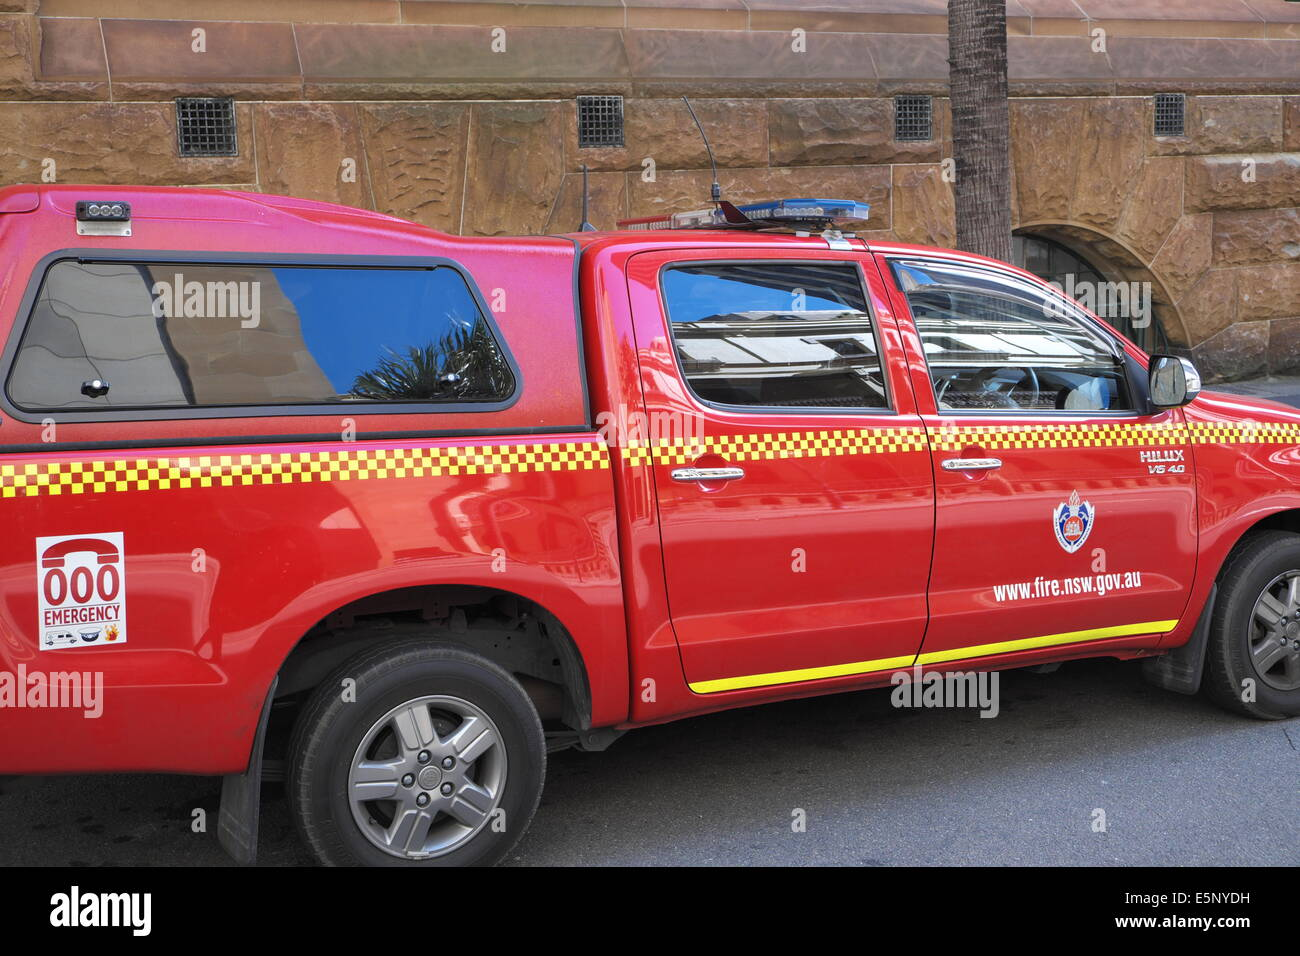 New South Wales Nsw Fire Service Vehicle A Toyota Hilux